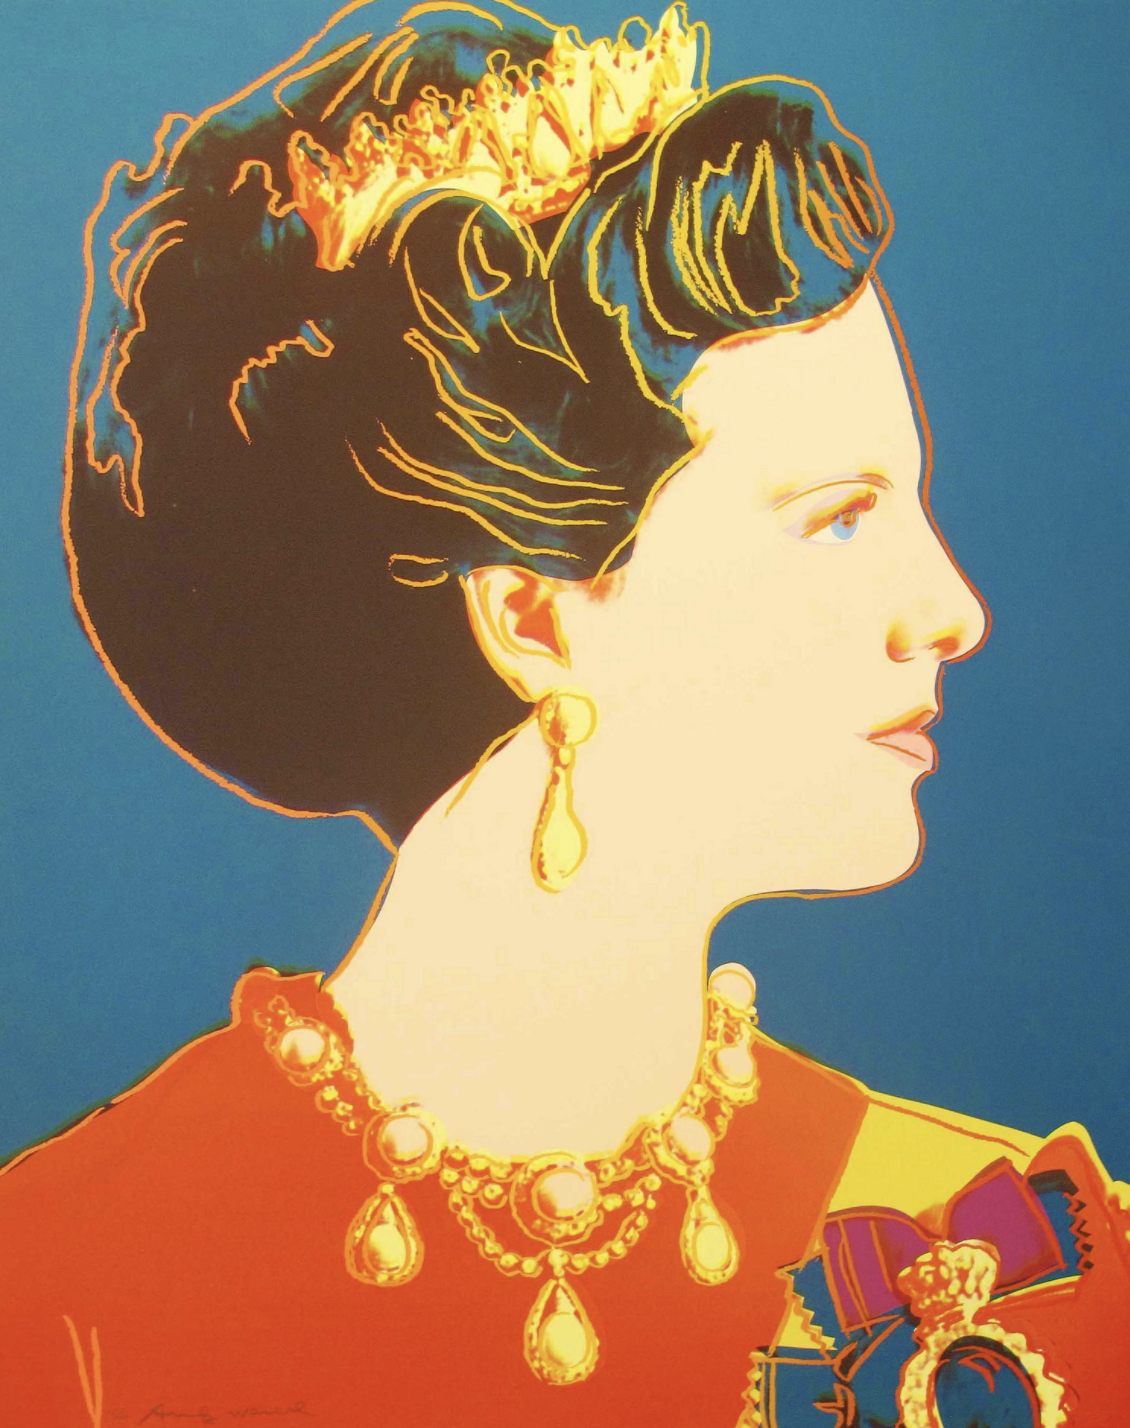 343 Queen Margrethe II by Andy Warhol